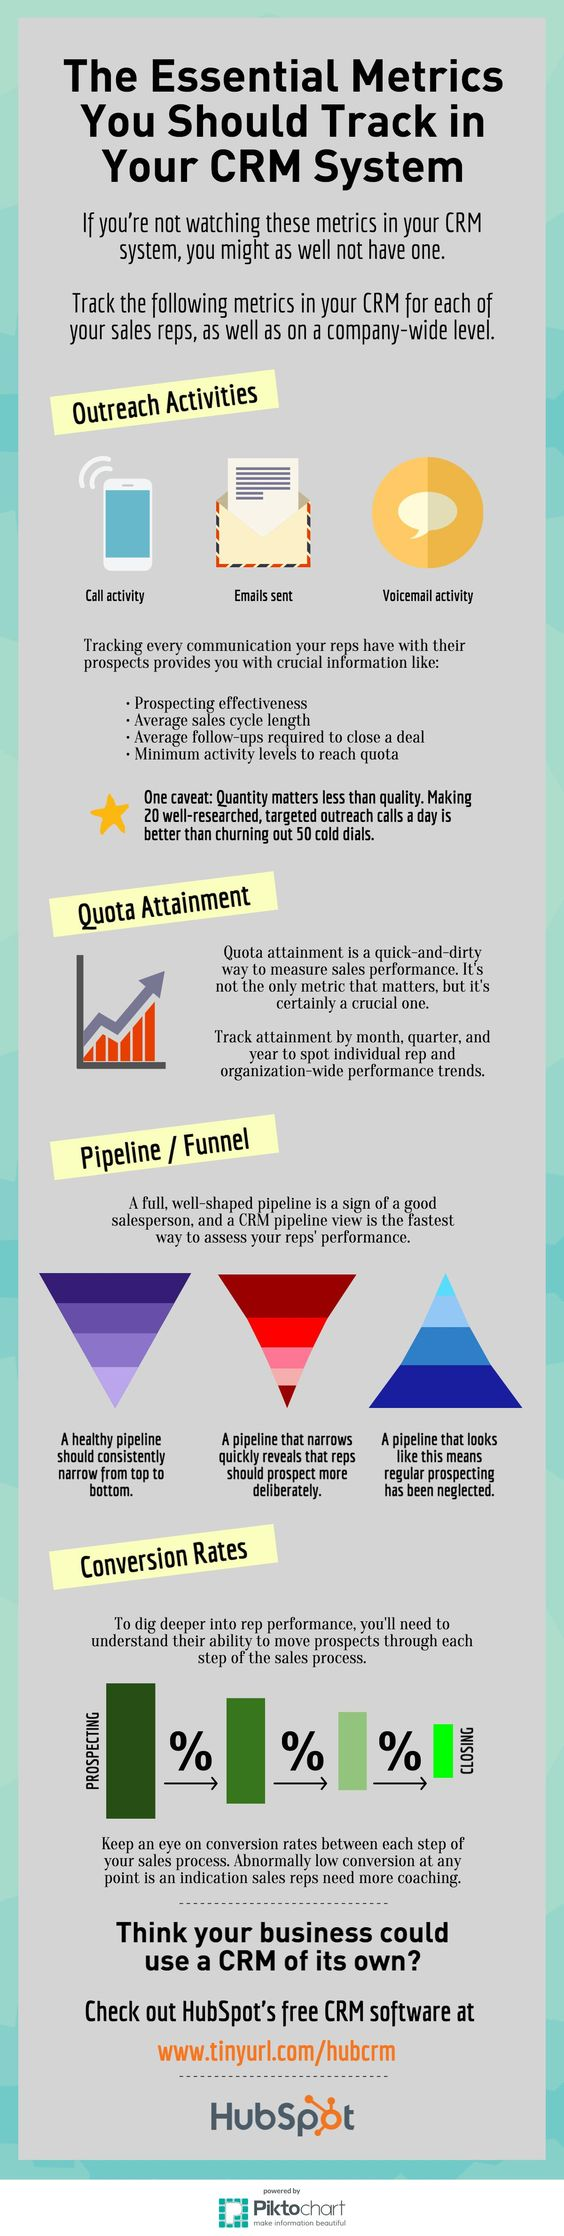 A nice infographic explaining the essential metrics track crm system. Click to read article.